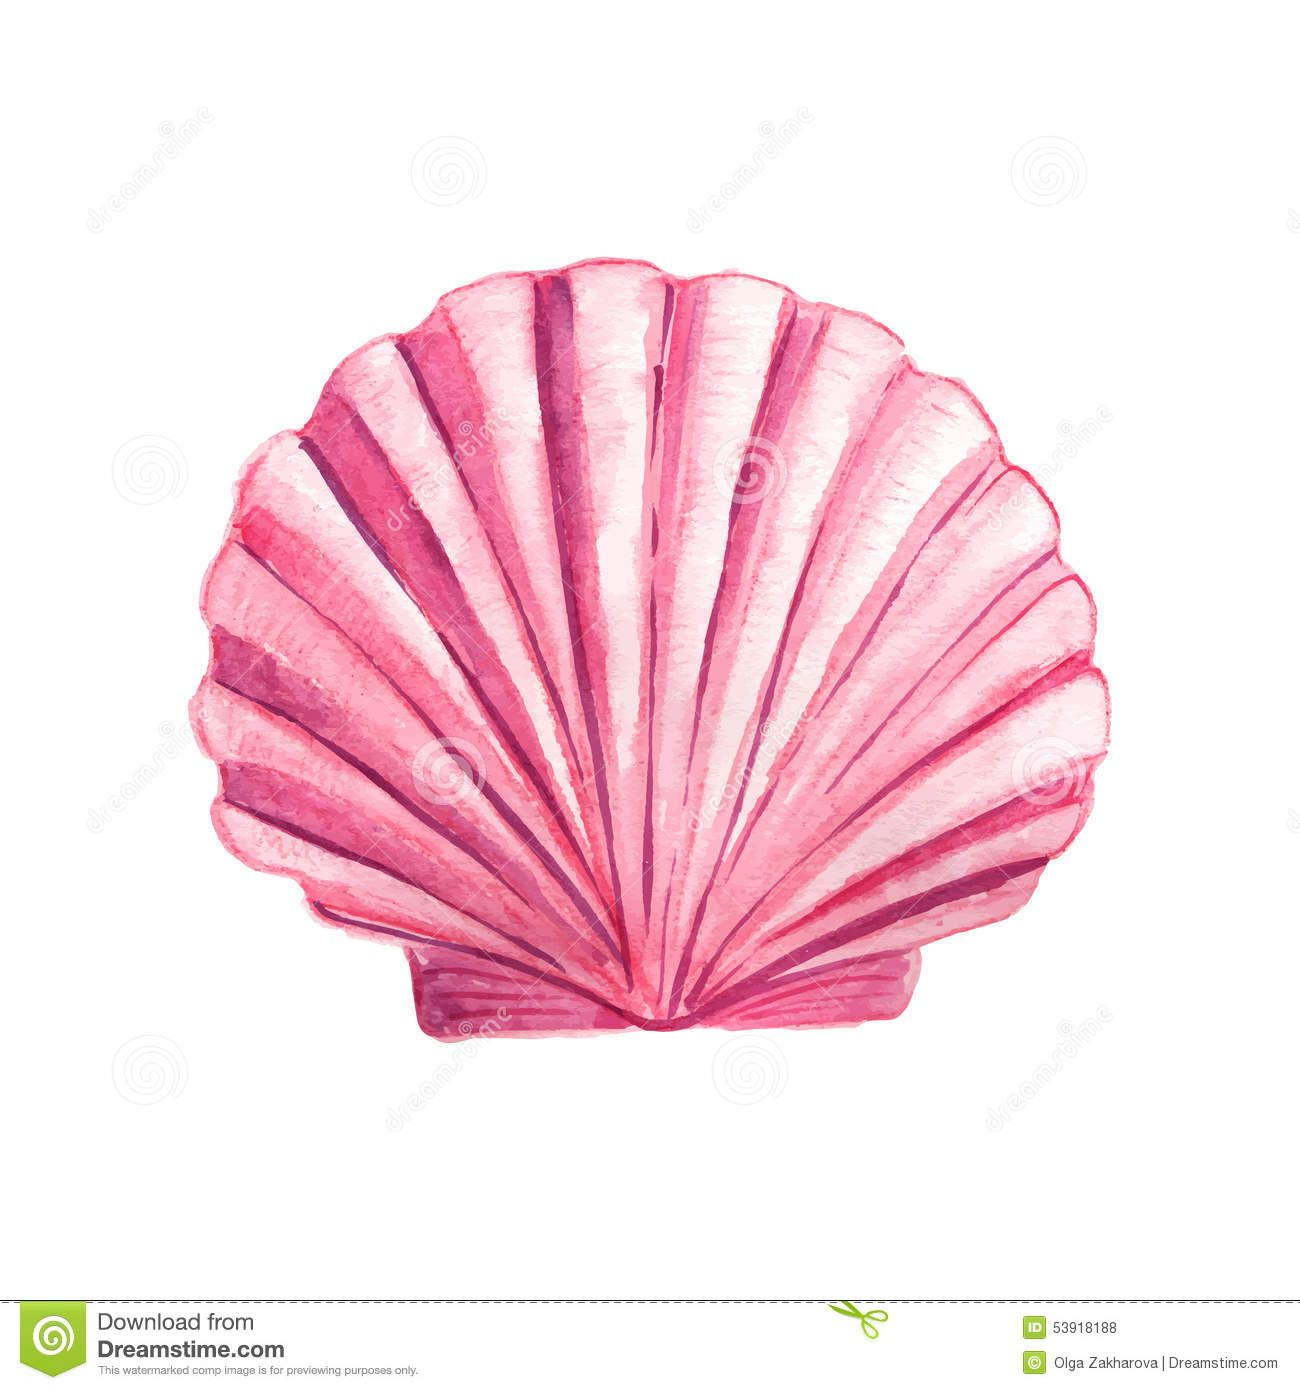 pink and ivory seashell watercolor art.